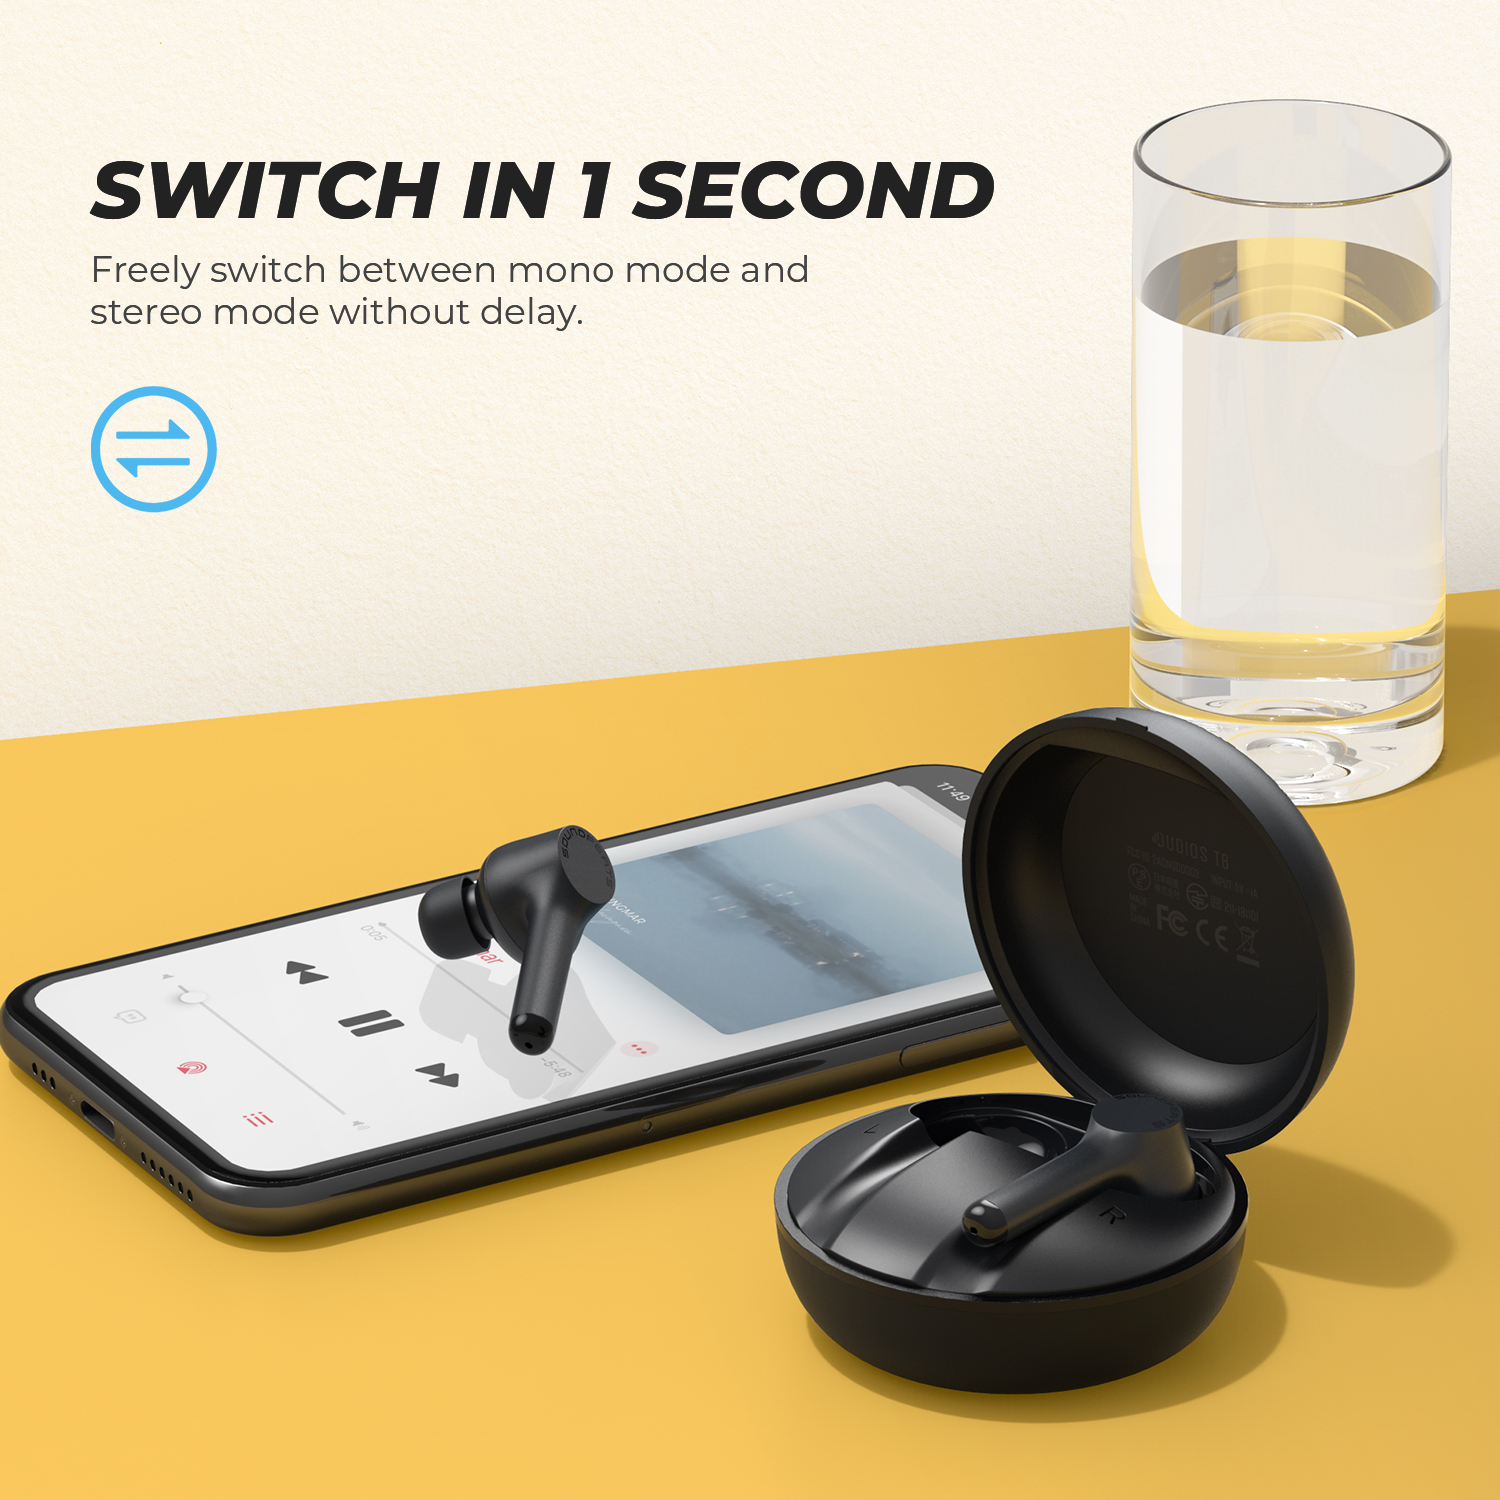 Soundpeats Mac 2021 New Tws Ipx7 Waterproof Earphone Audifono Bluetooth Headset Touch Wireless Earbuds with Charging Case